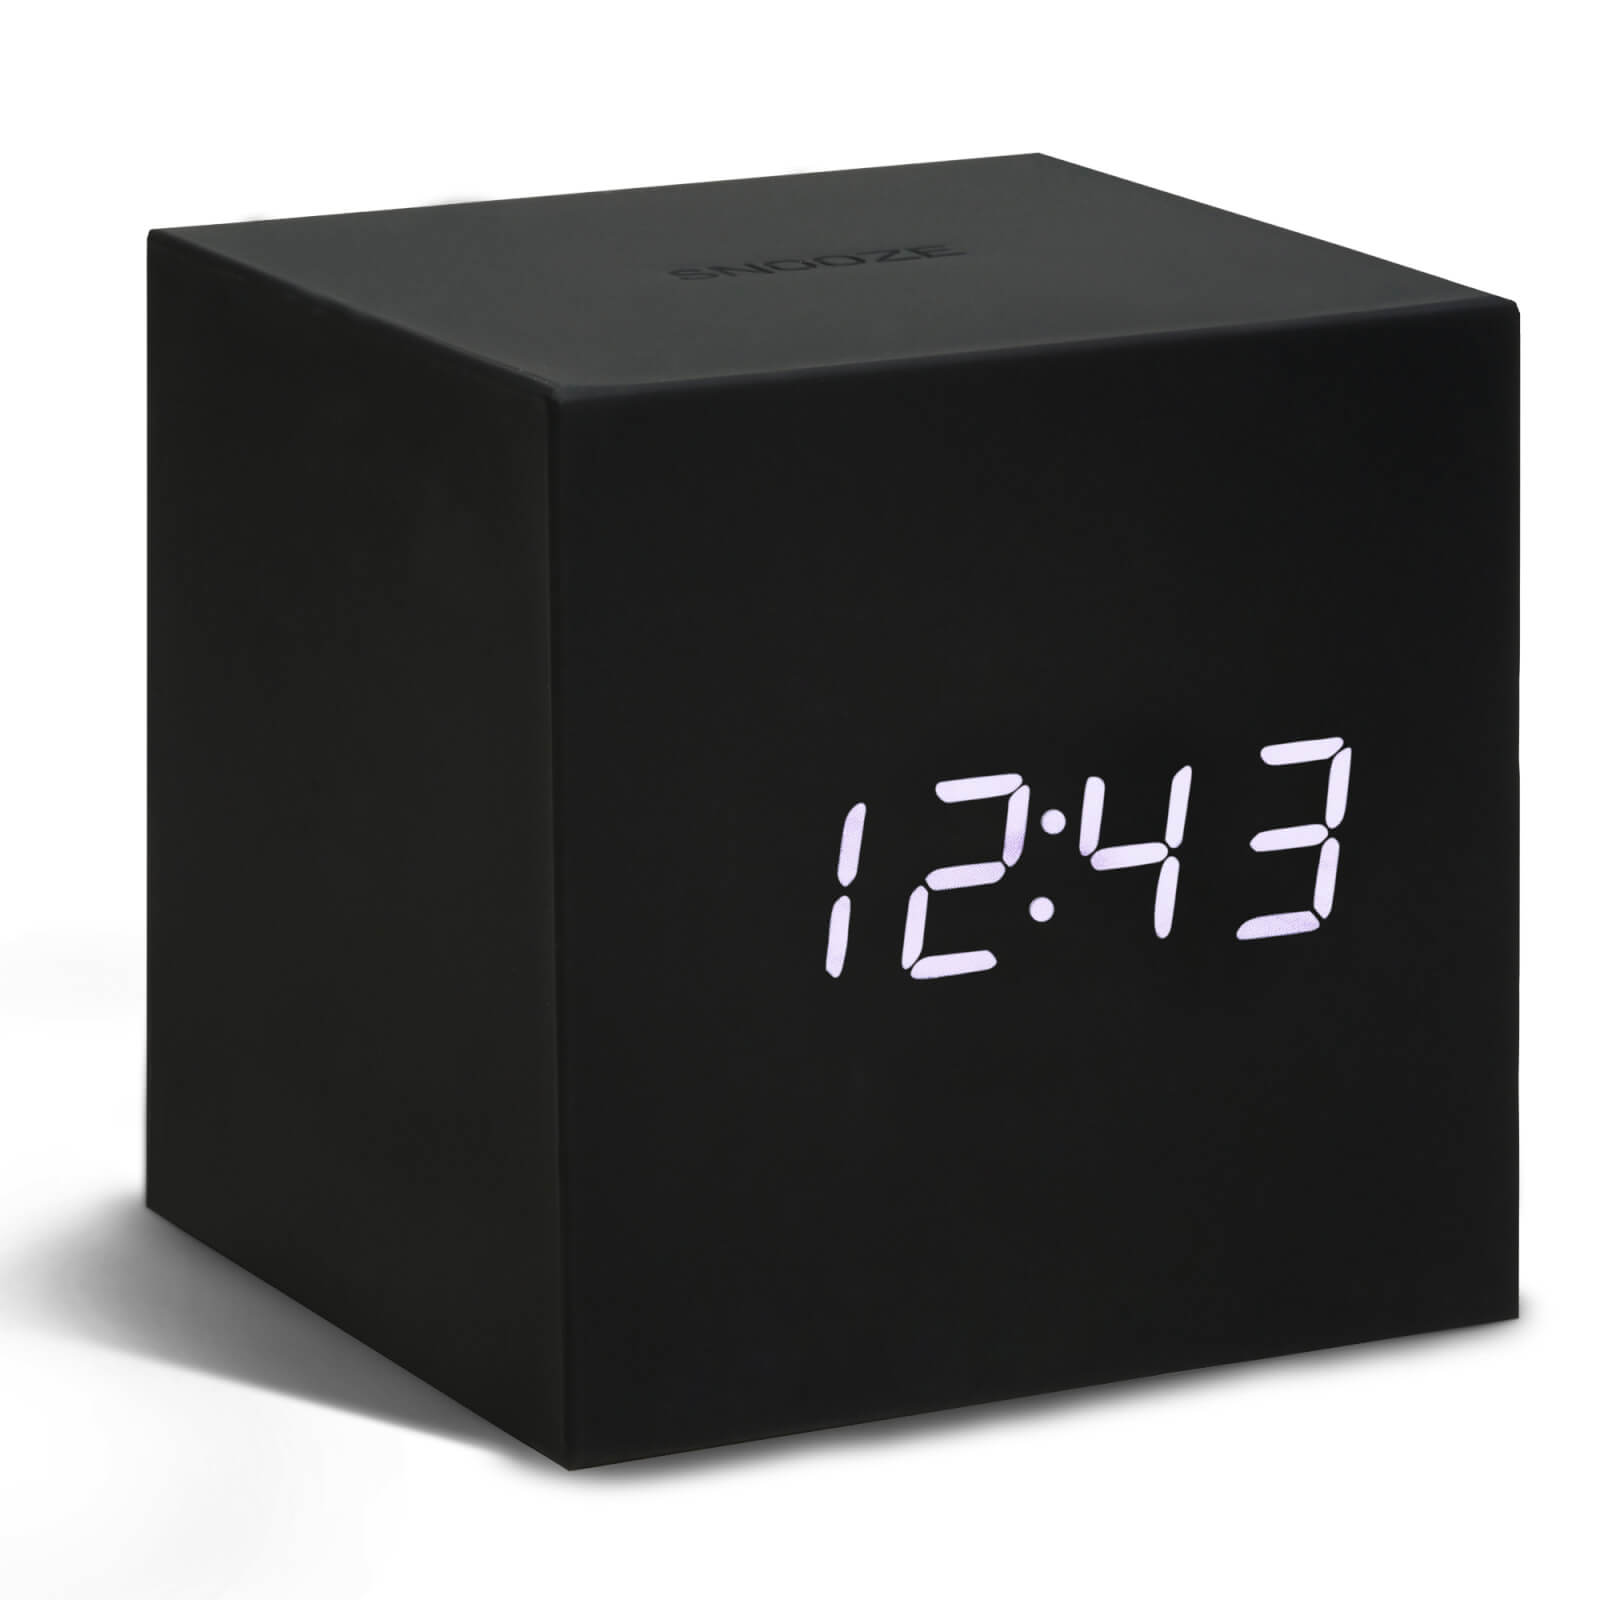 Gingko Gravity Cube Click Clock - Black